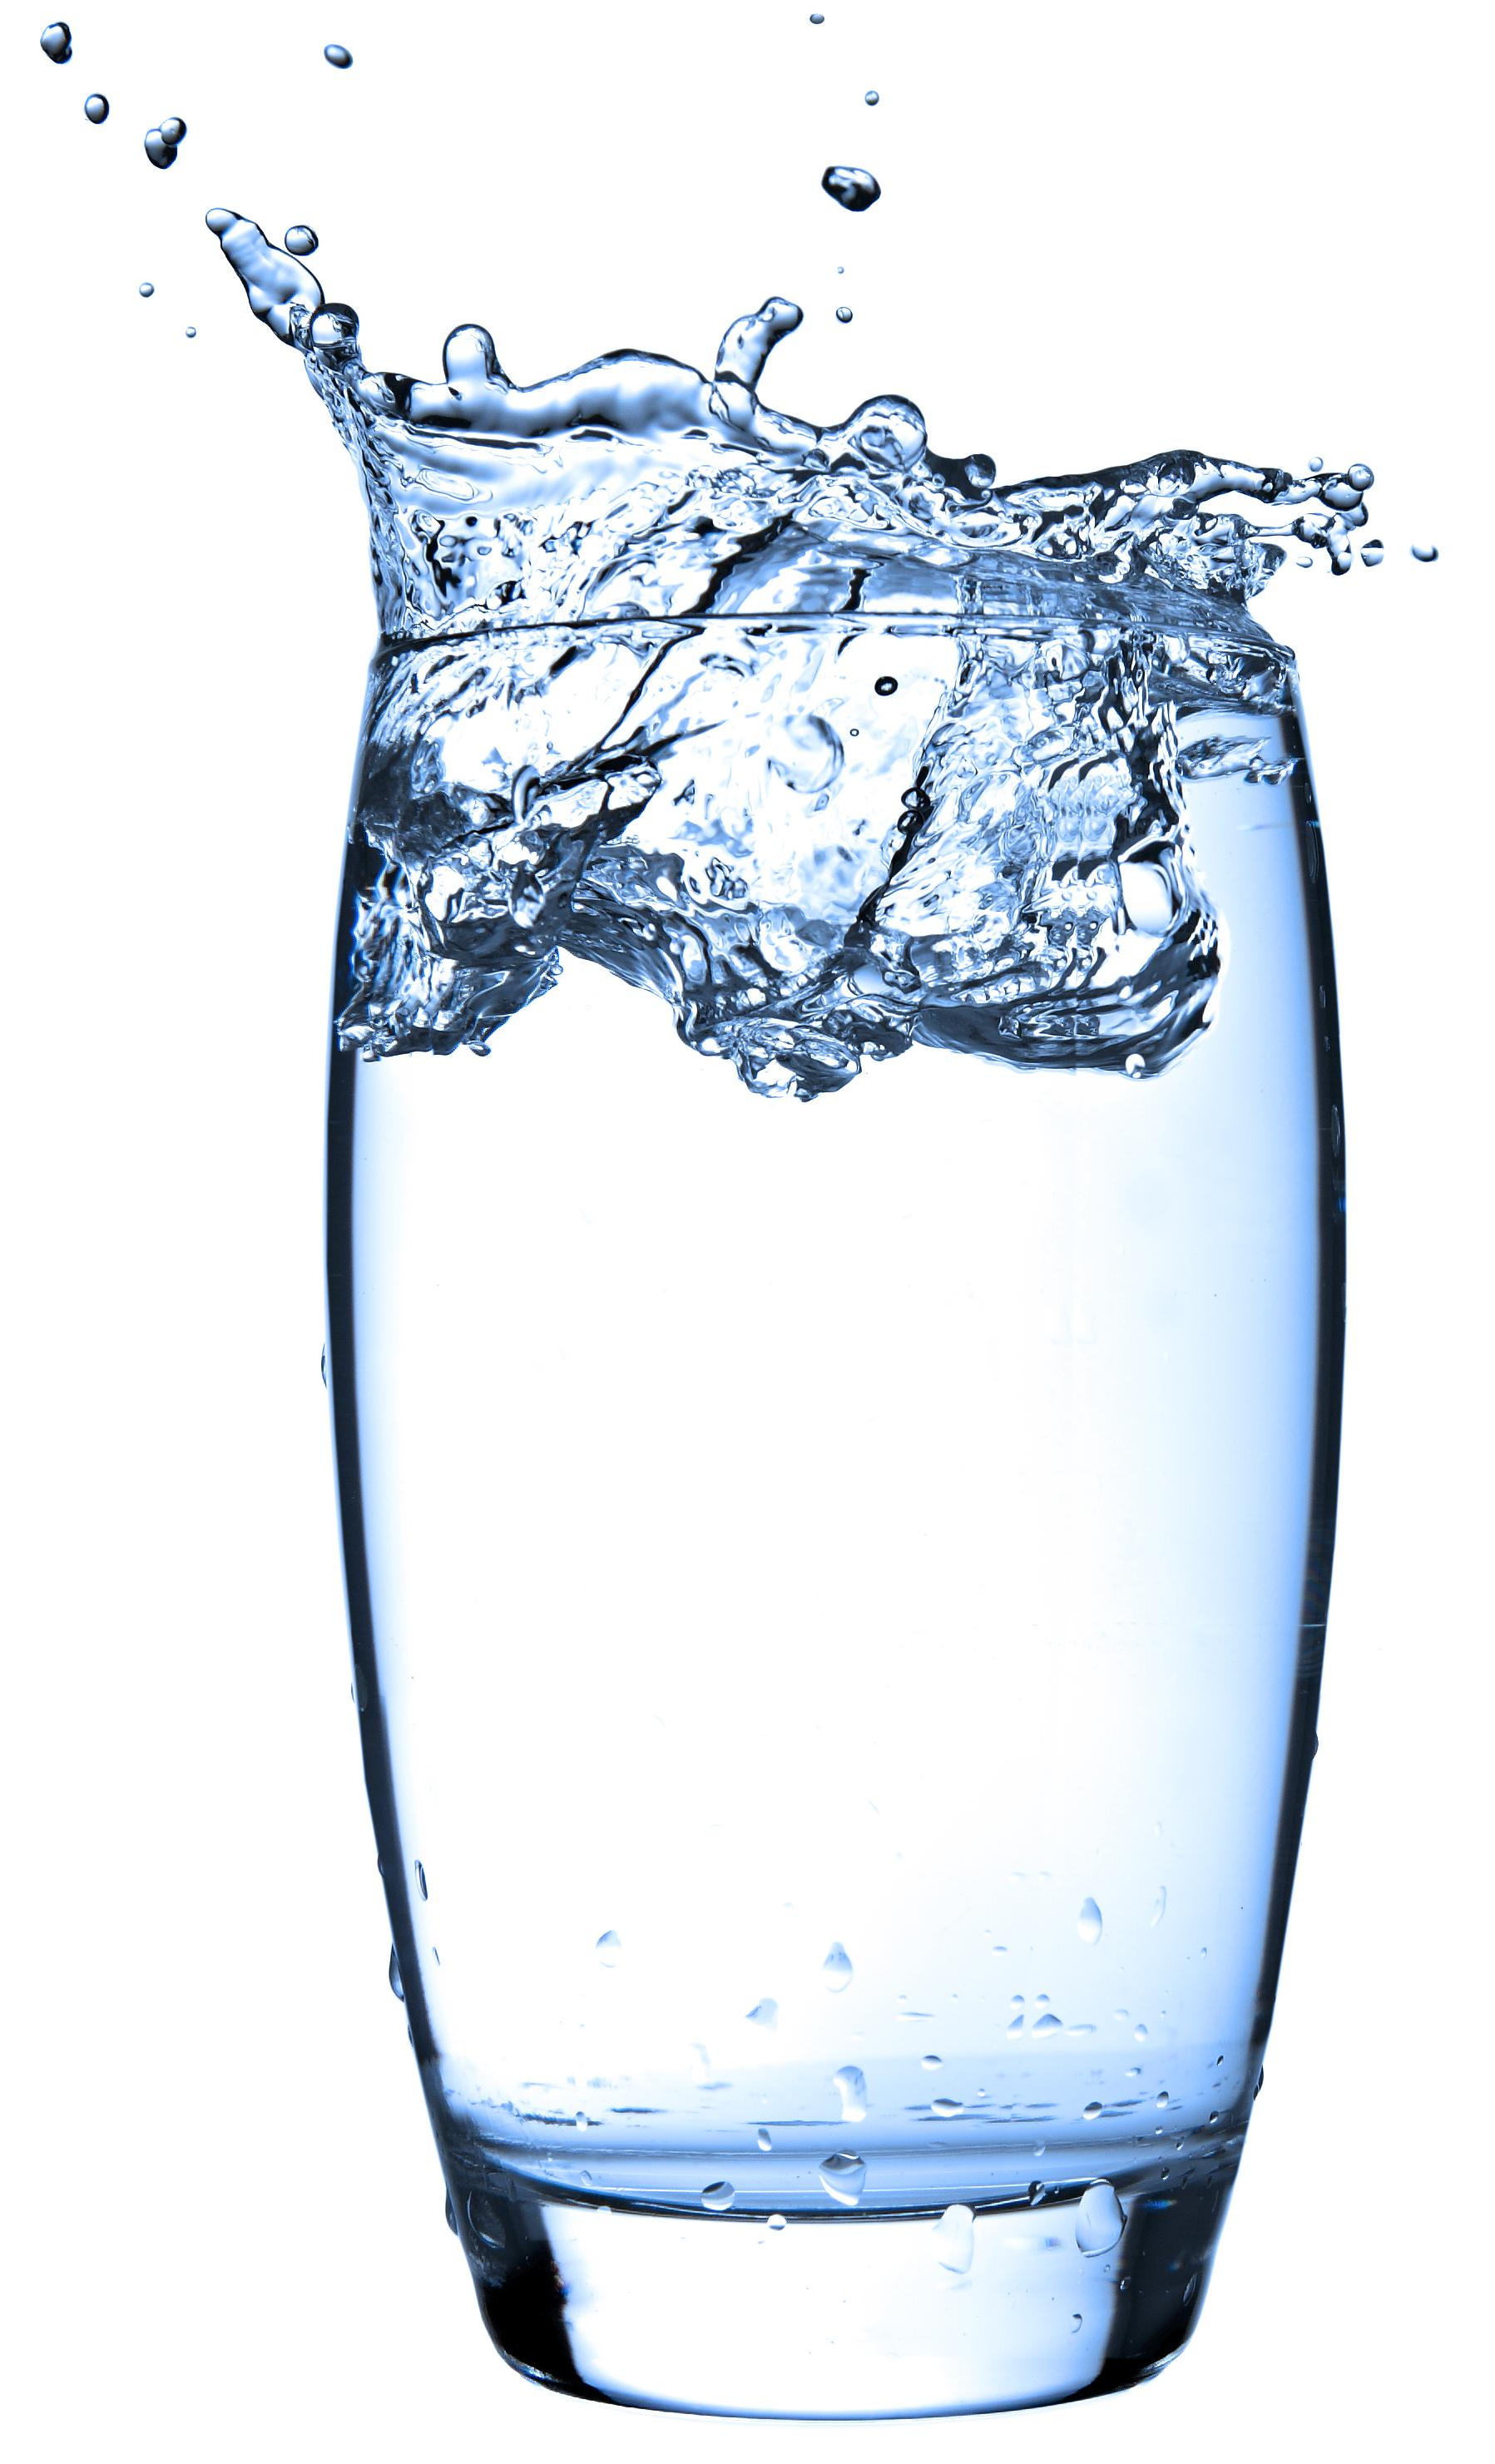 Purifying Drinking Water Bottled Water Filtration Or Ro Healing Autism Adhd